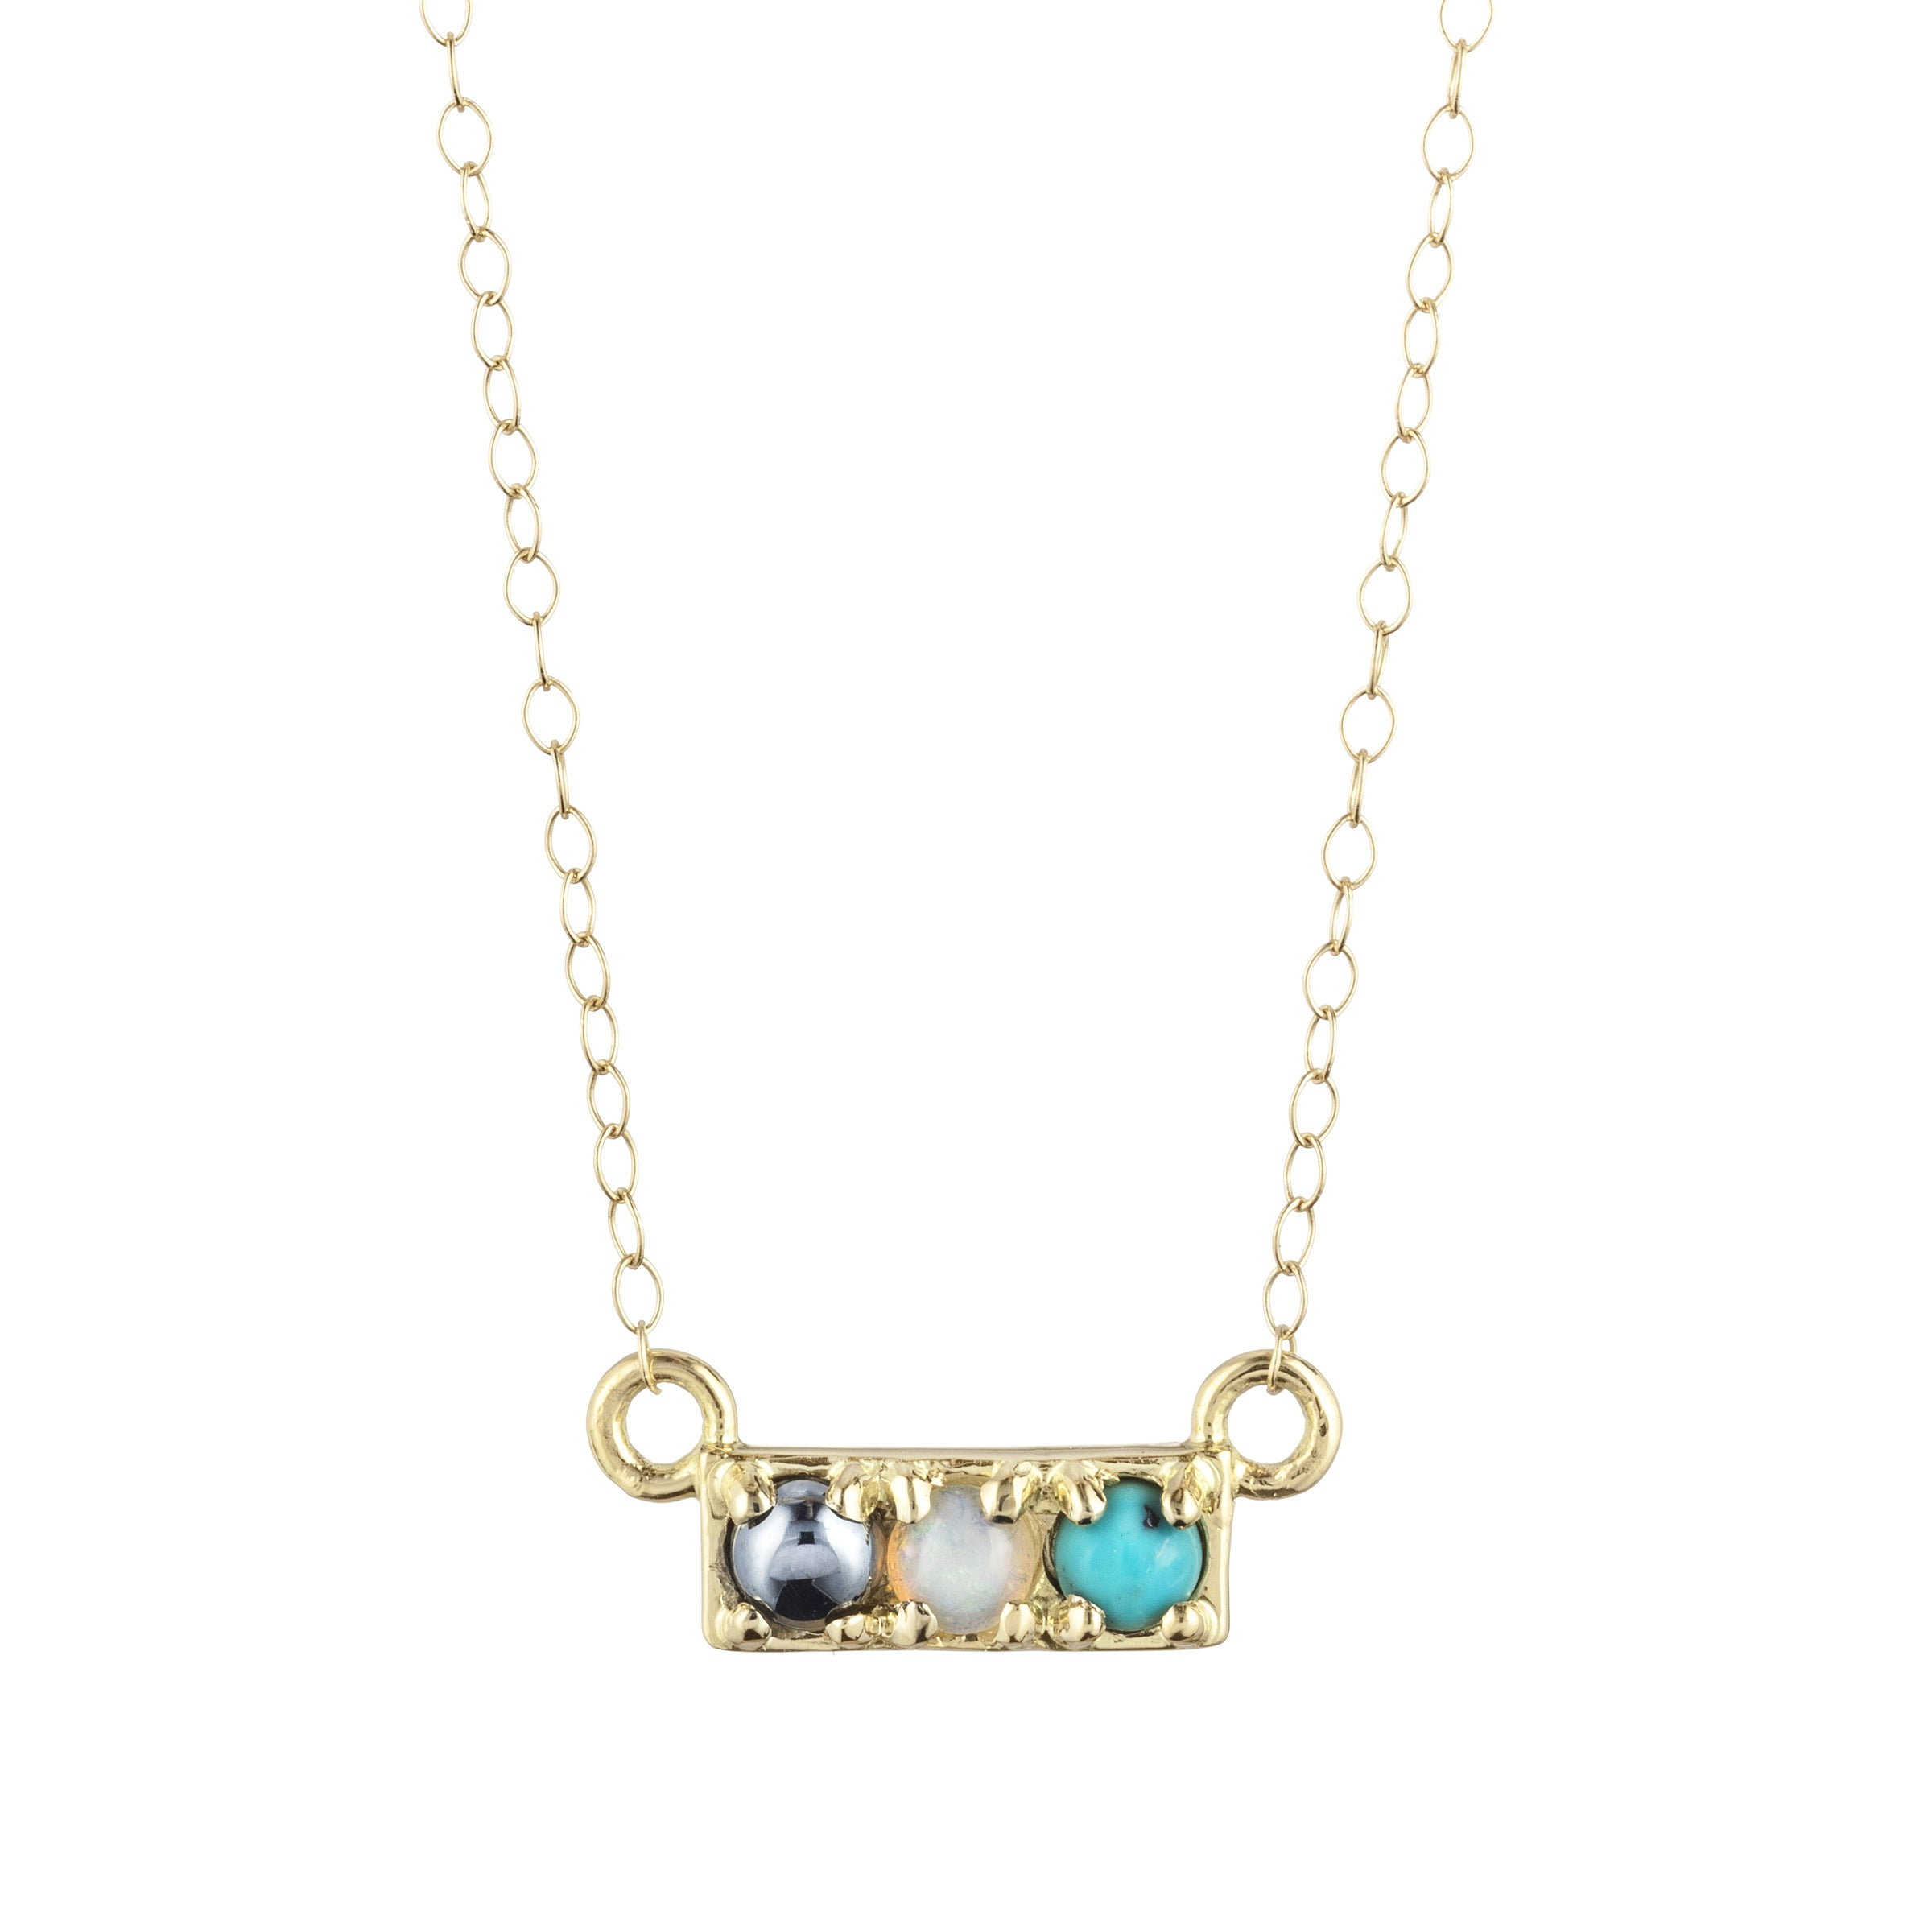 Code Word Hot Necklace 18K Gold